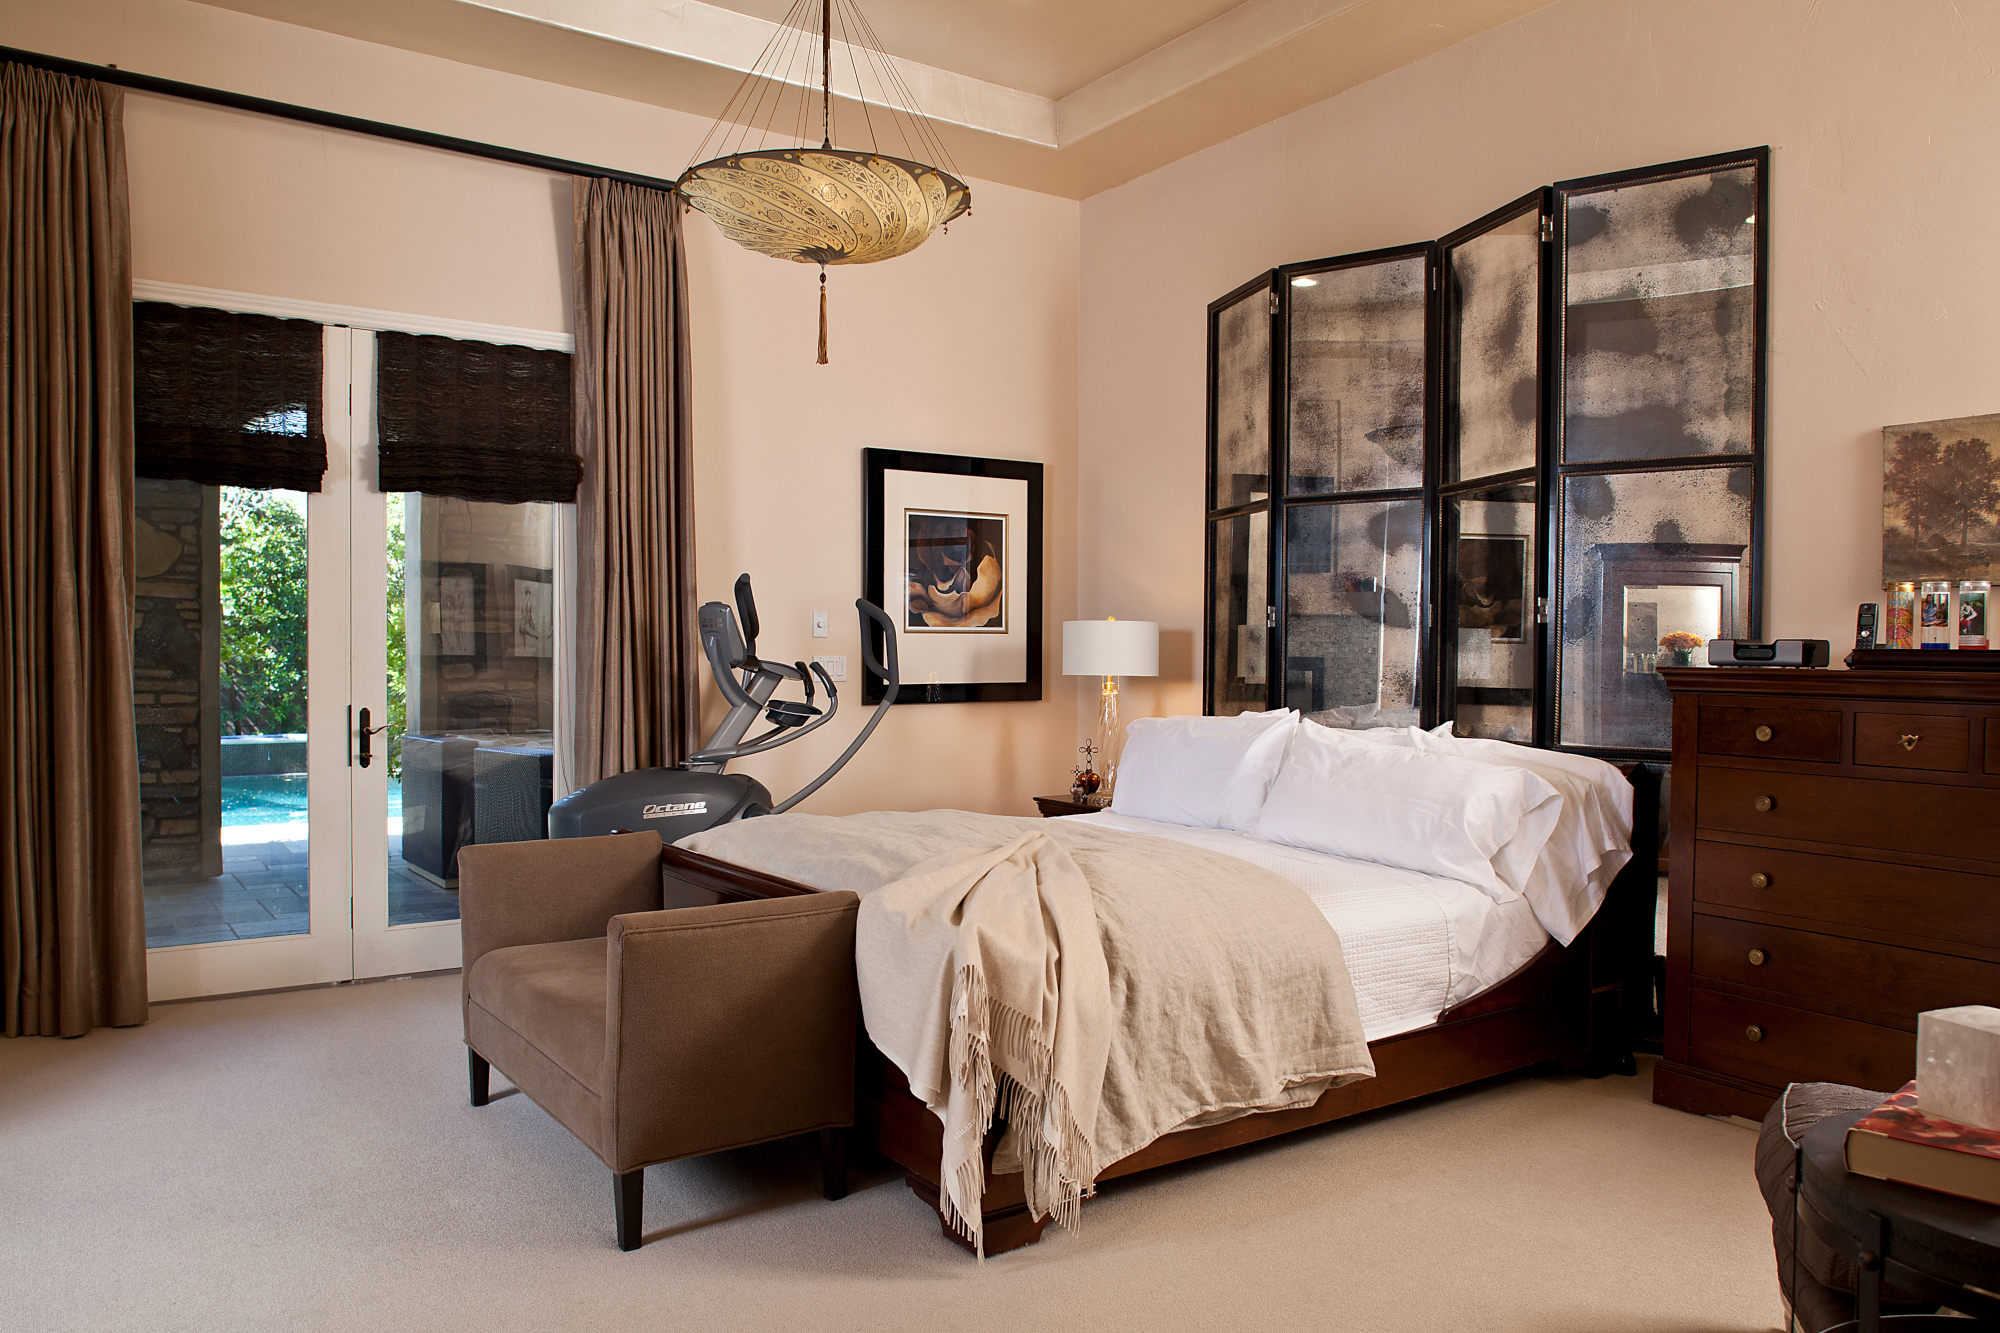 Spanish styled master bedroom with antique mirror headboard screen.